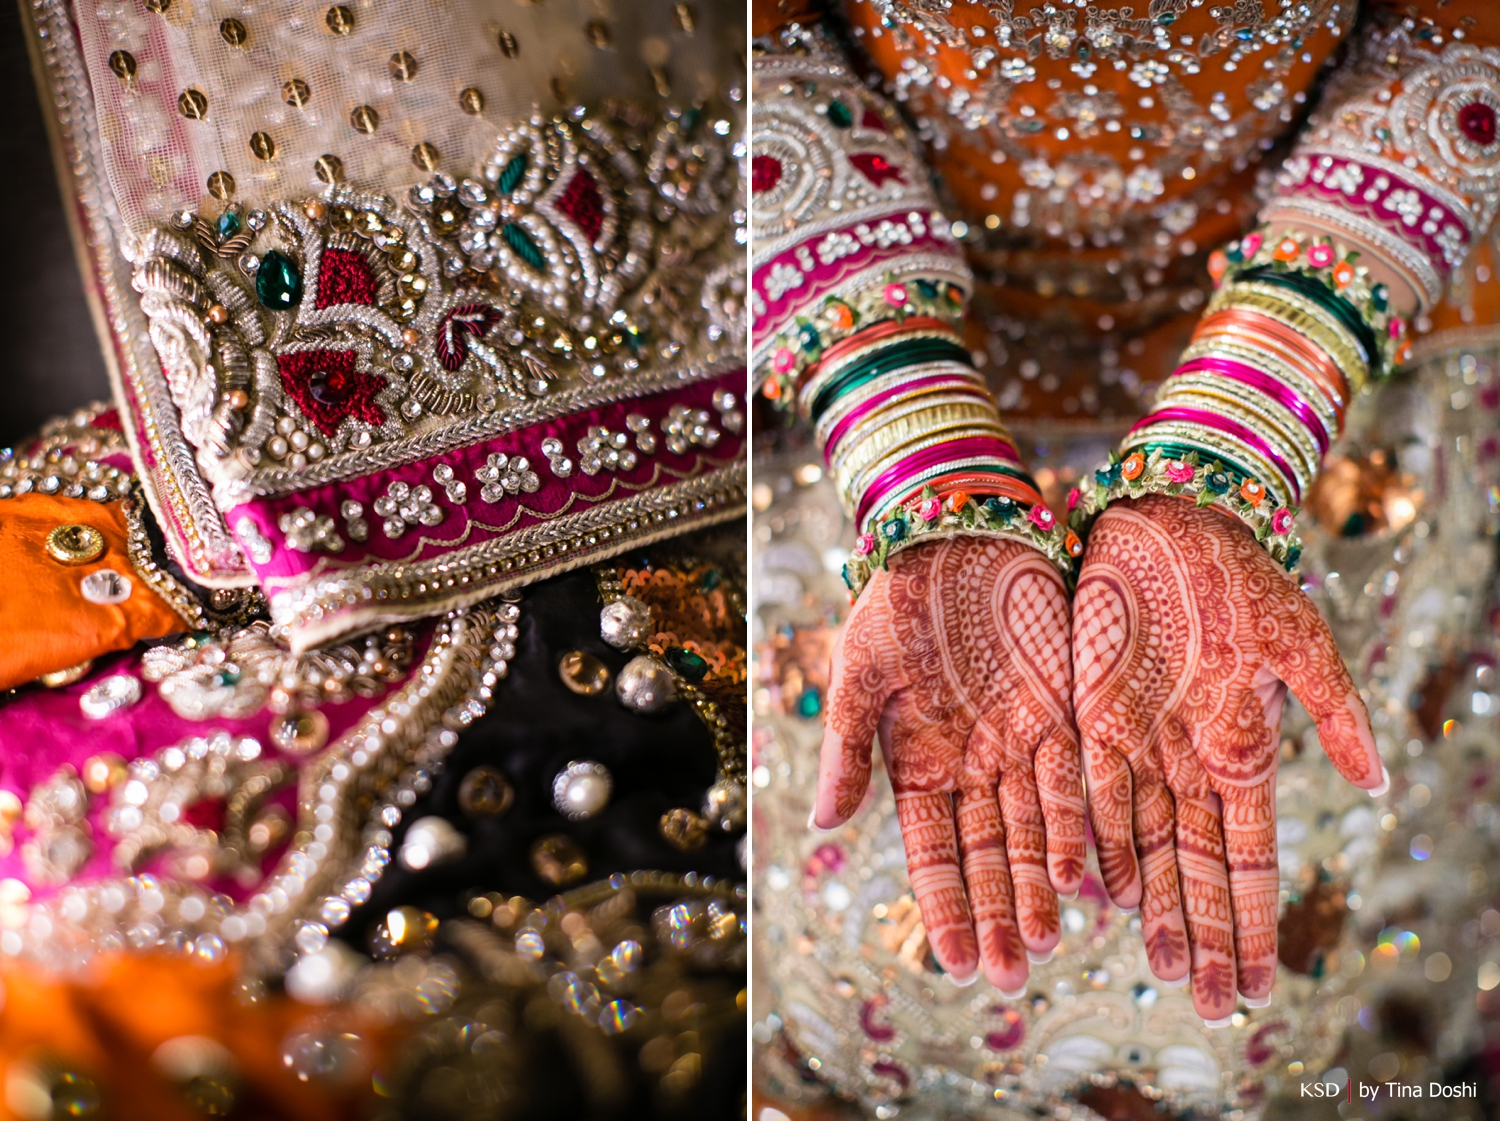 nj_south_asian_wedding_0006